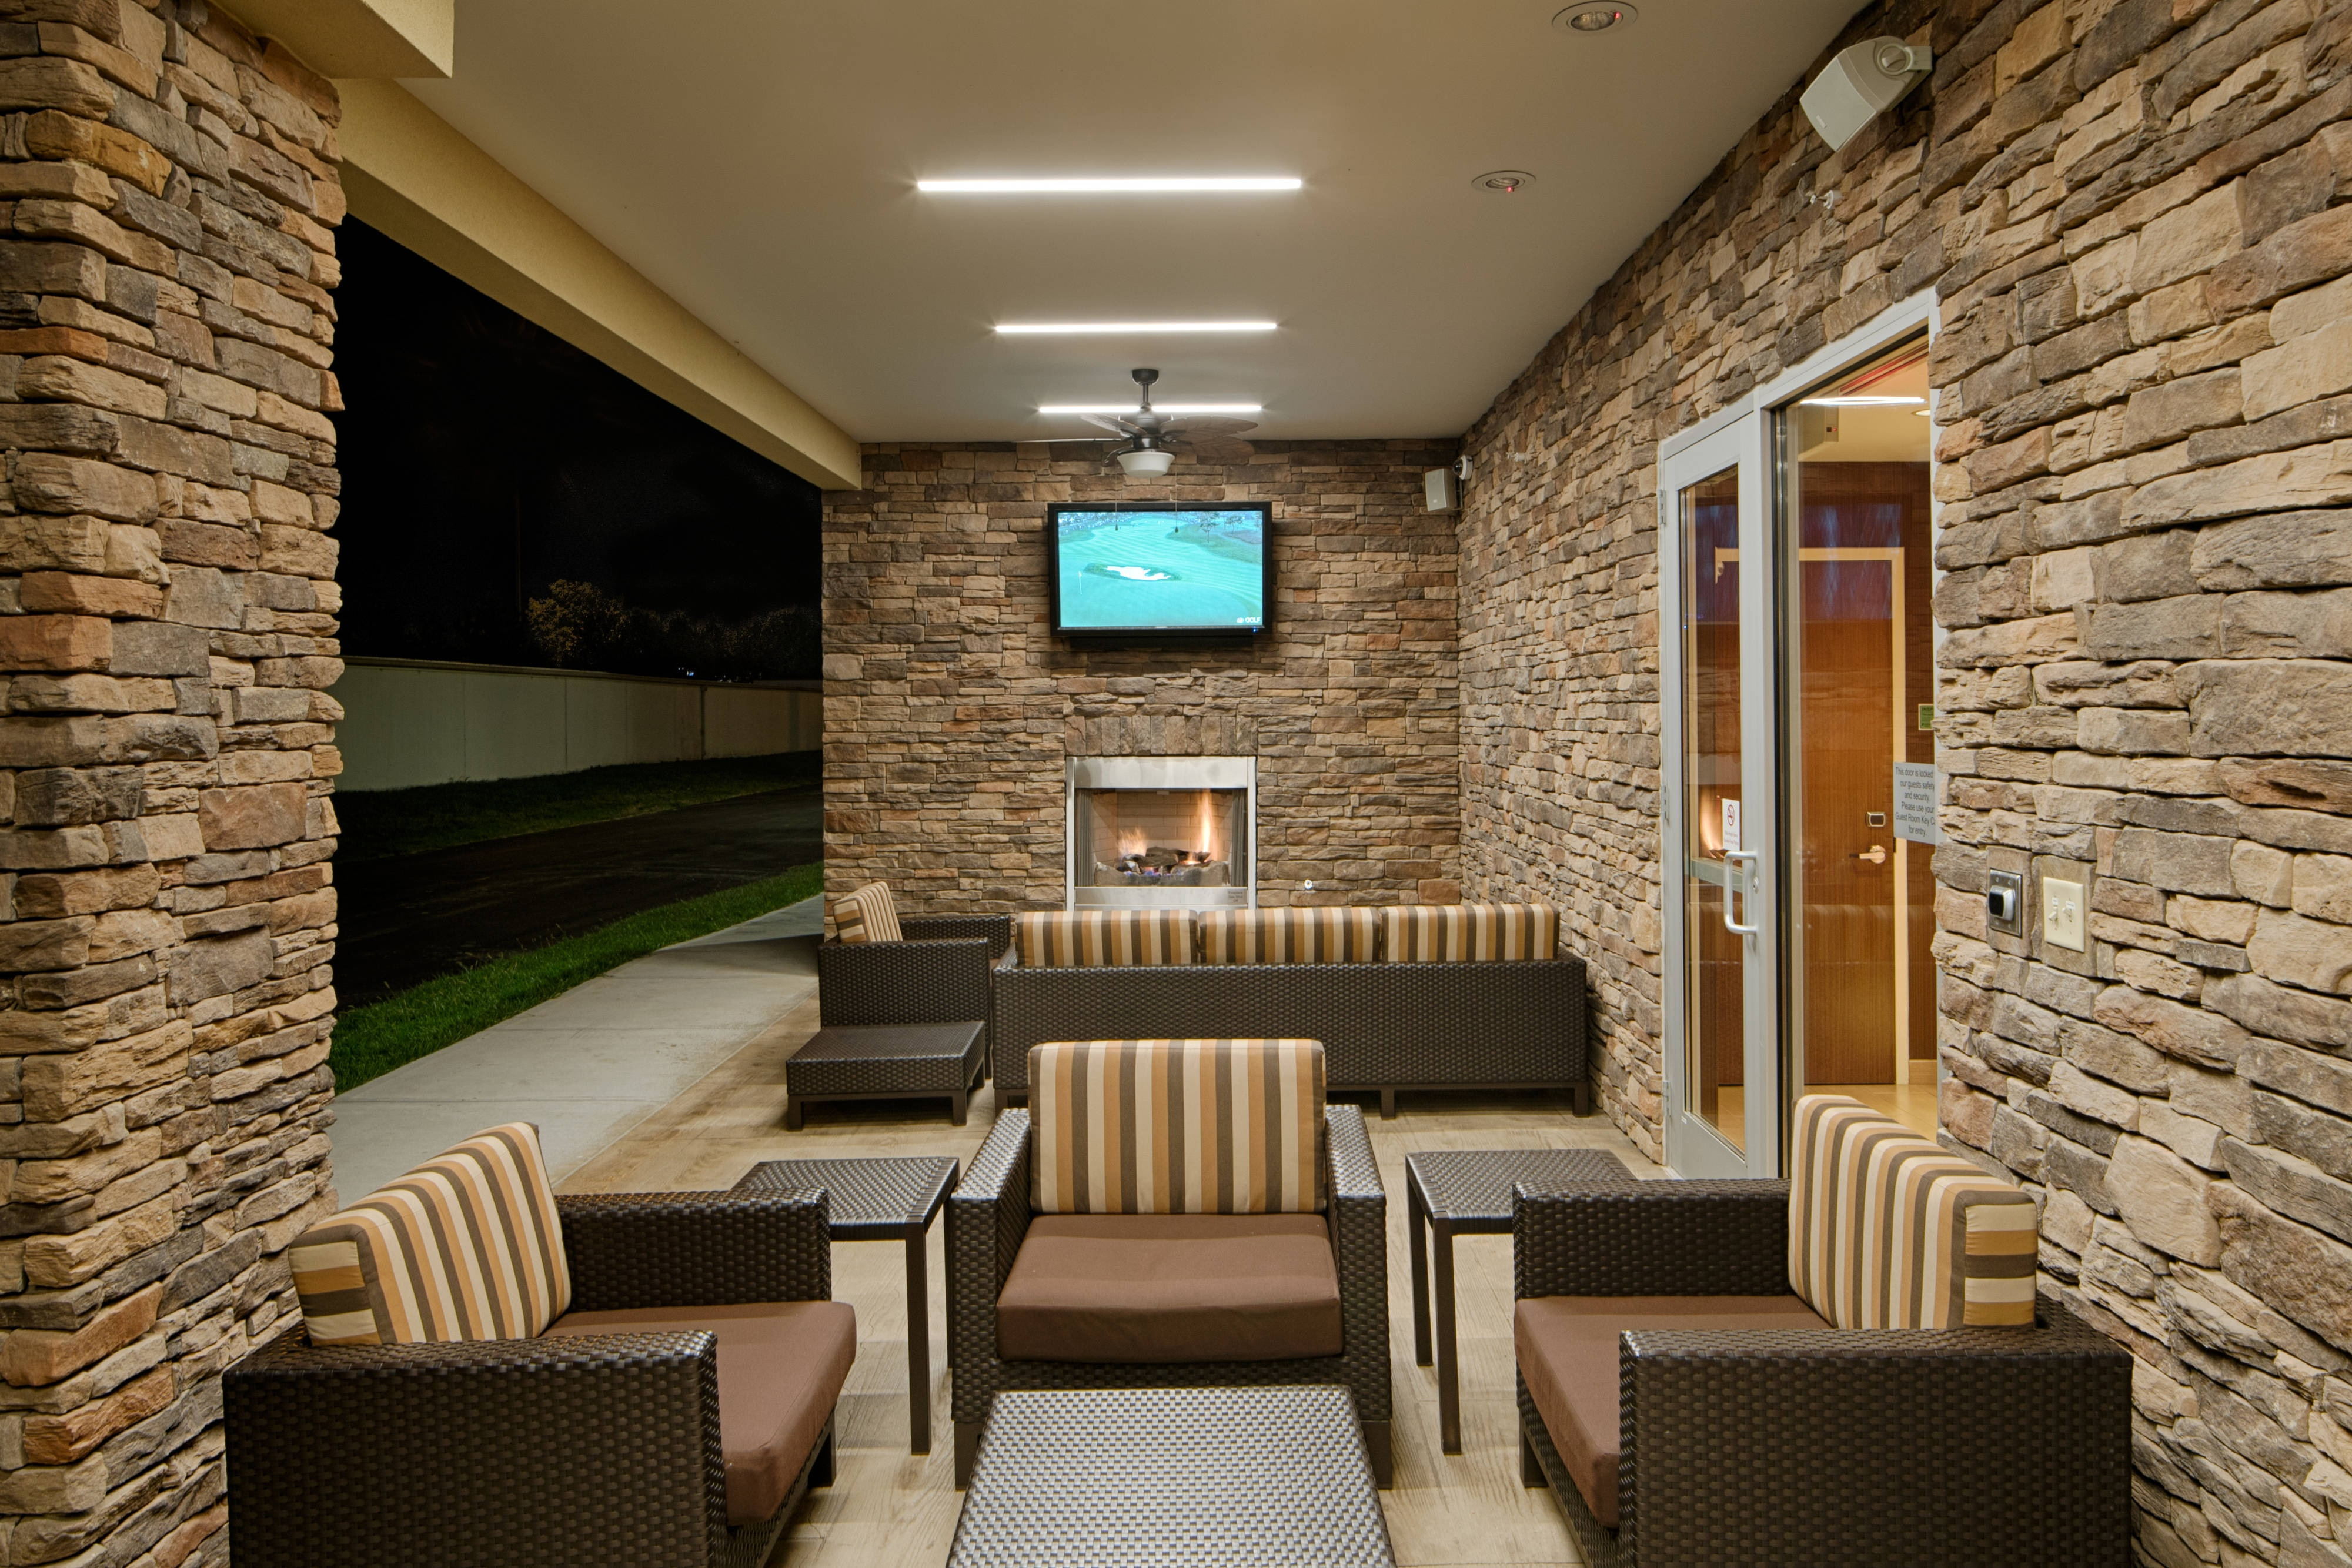 Exterior Fireplace Patio